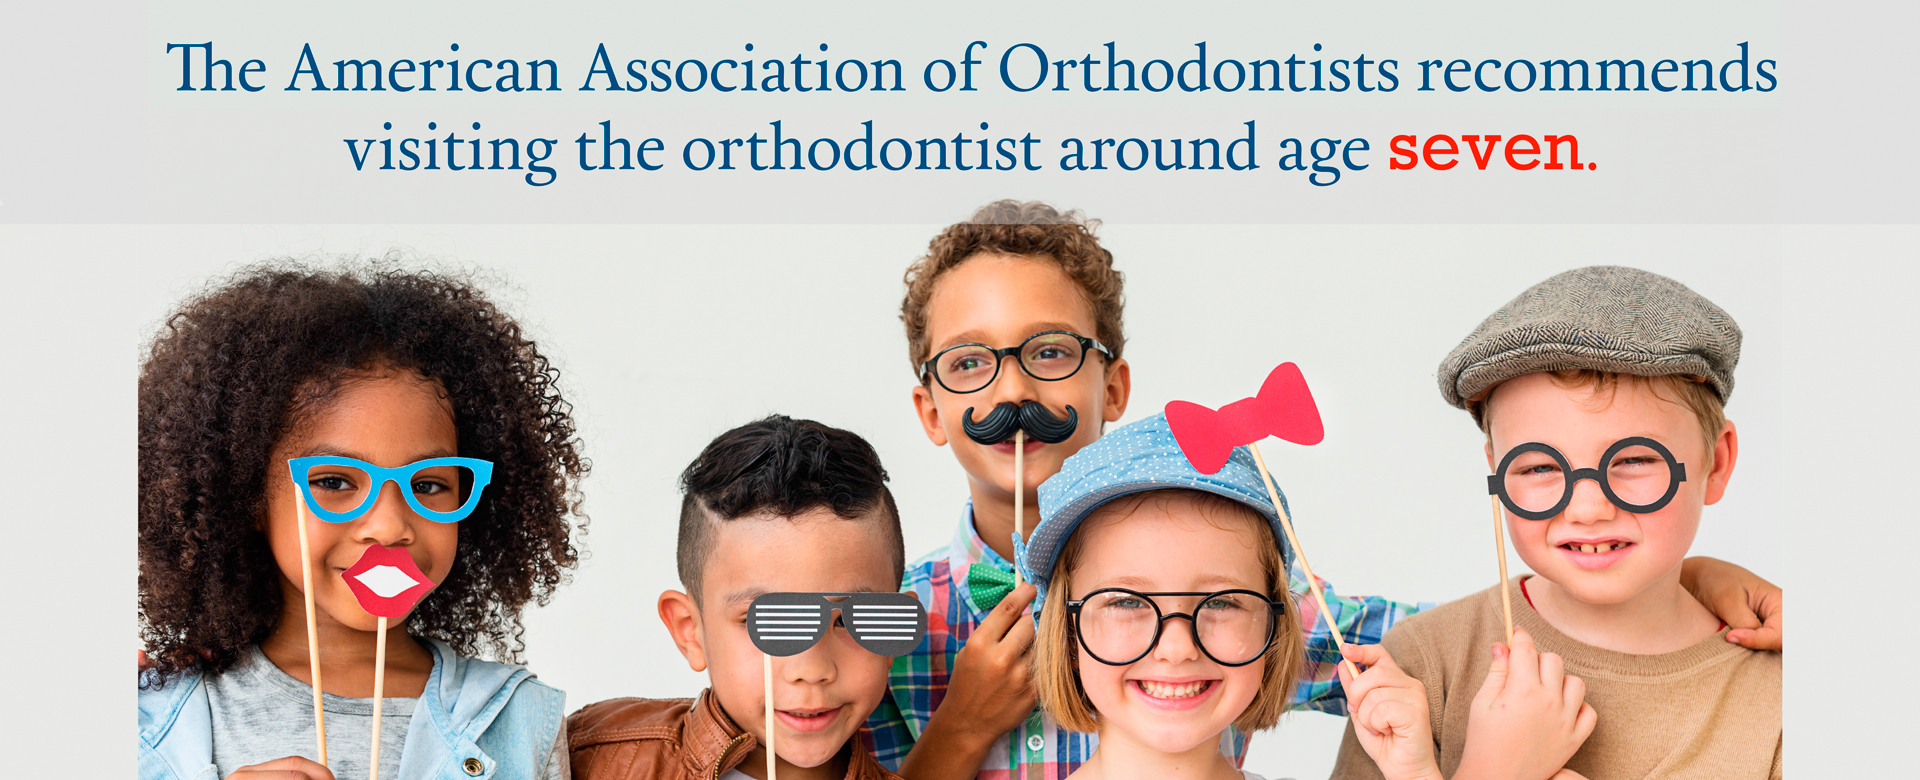 The American Association of Orthodontists recommends visiting the orthodontist around age seven